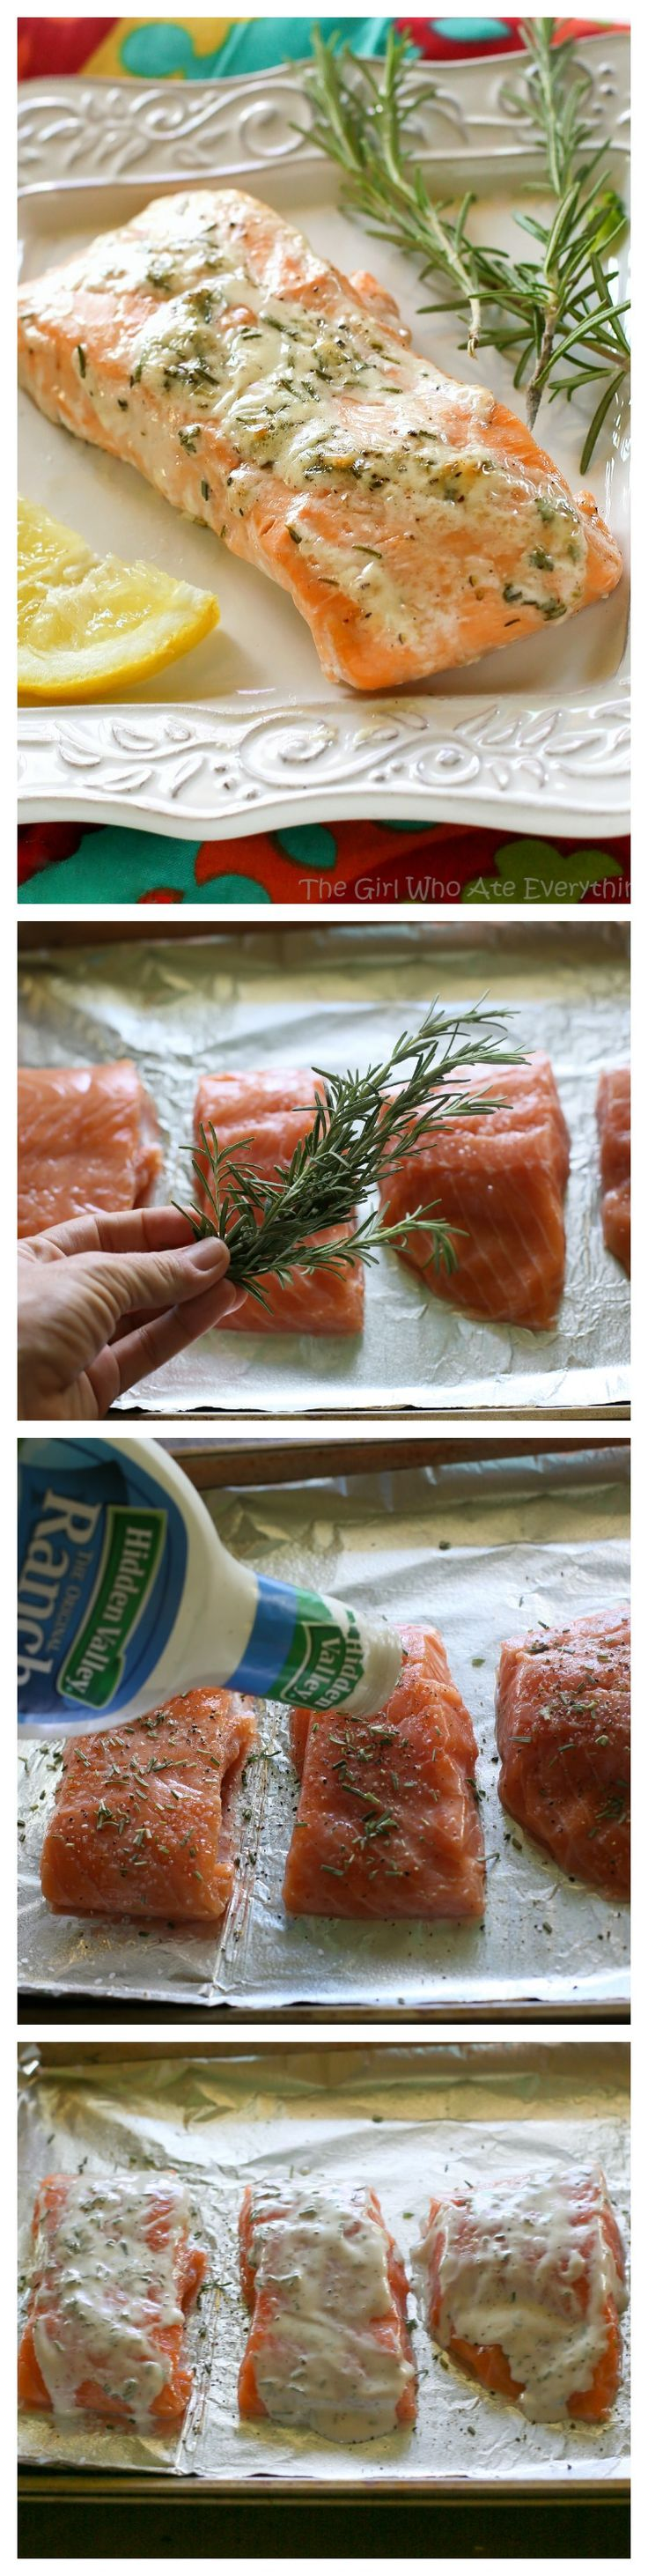 This Rosemary Ranch Salmon is delicious! The combo of the flavors creates a tender and savory sauce that is out of this world. the-girl-who-ate-everything.com